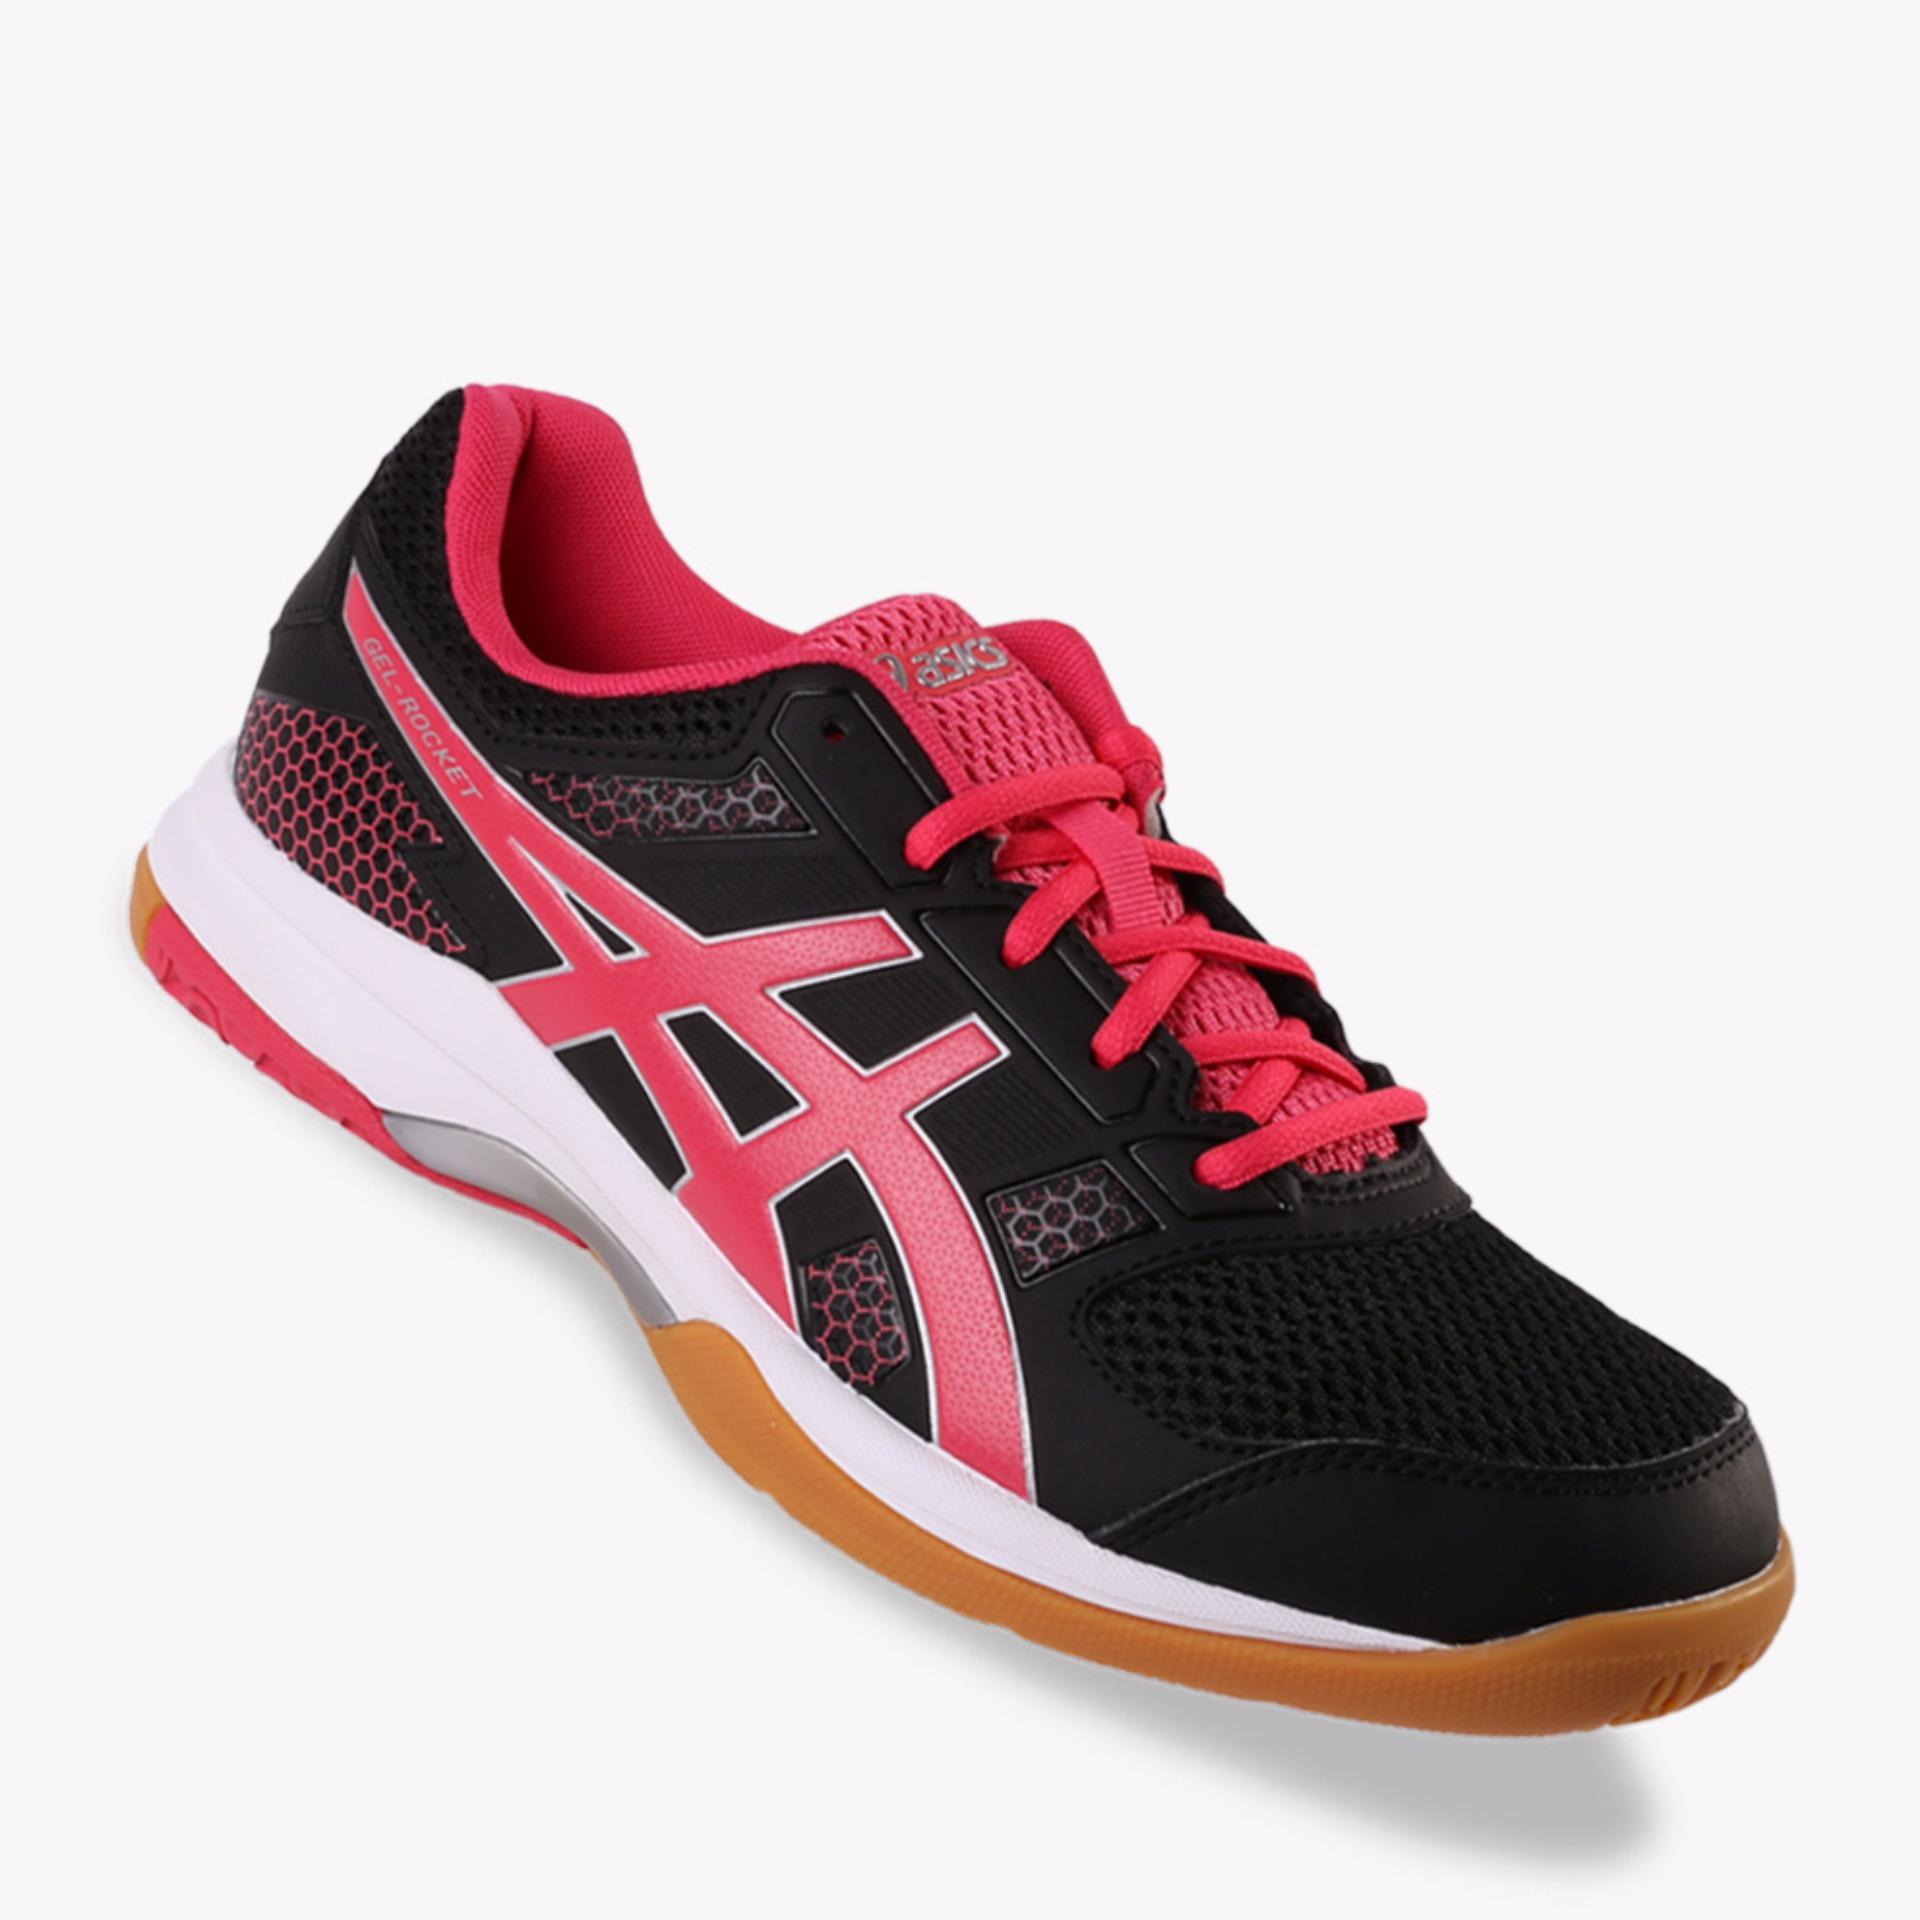 Asics Gel-Rocket 8 Women's Court Shoes - Hitam